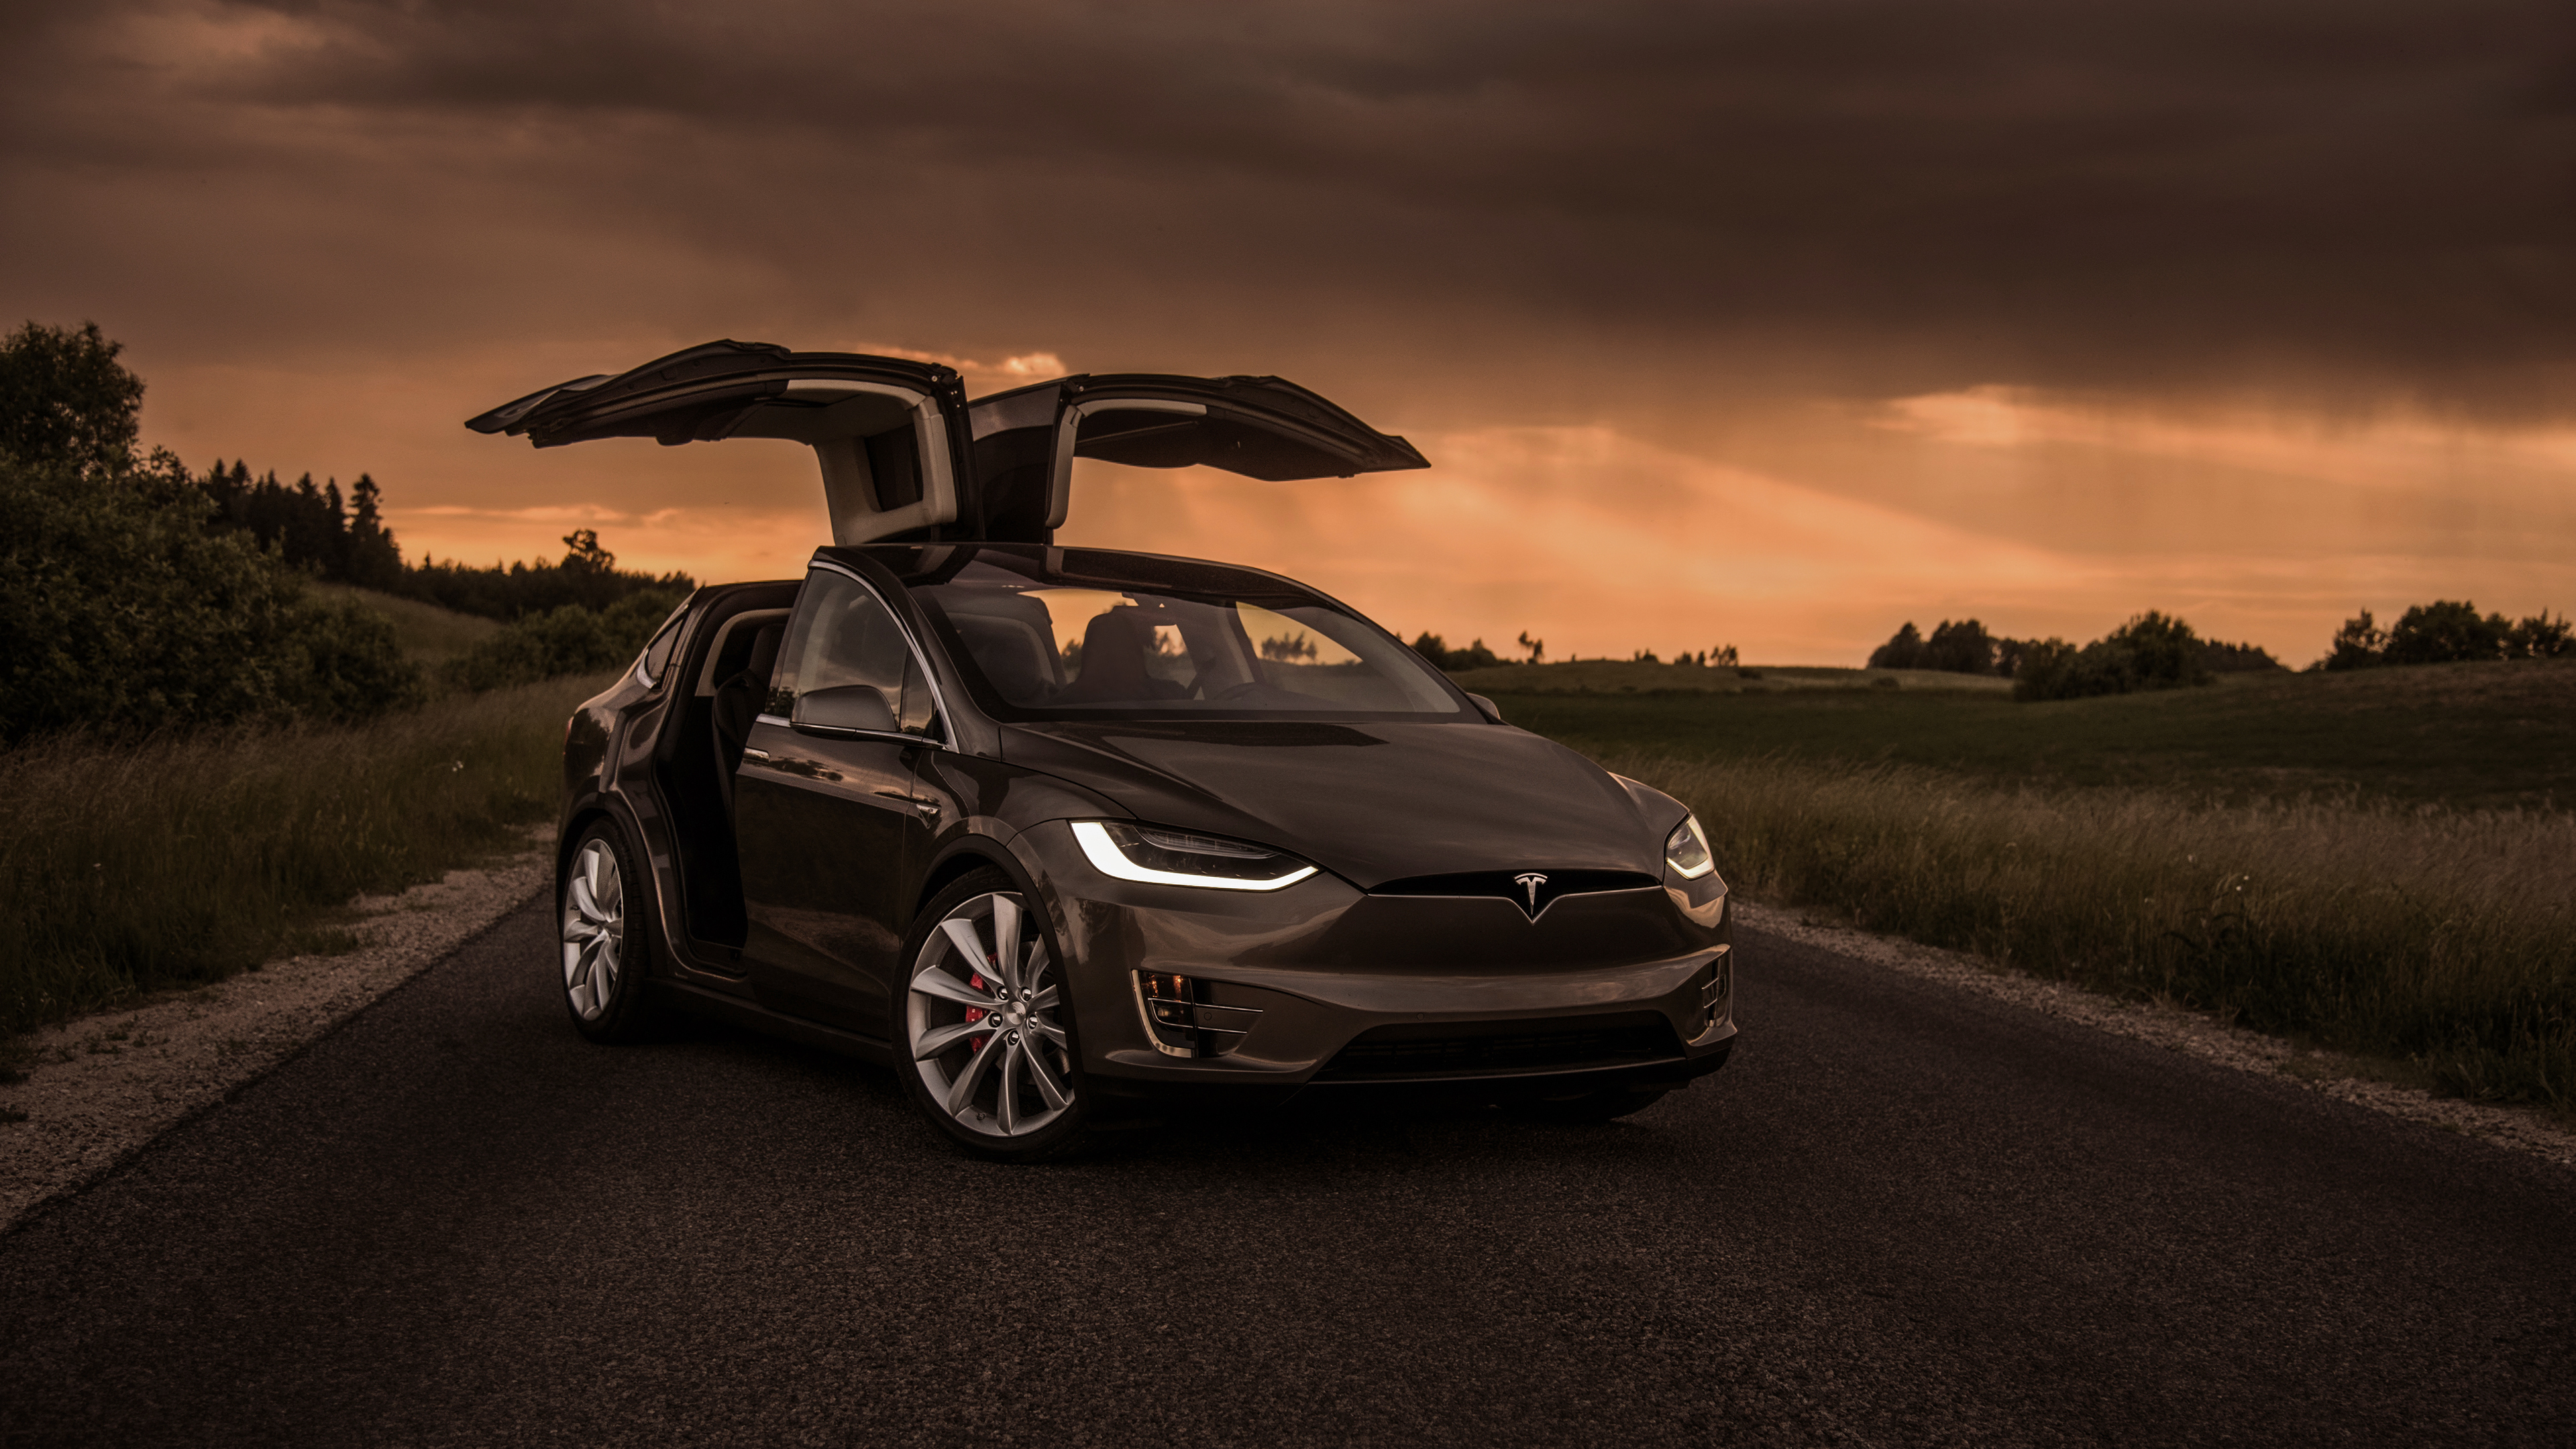 tesla model x front 1559764594 - Tesla Model X Front - tesla wallpapers, hd-wallpapers, cars wallpapers, behance wallpapers, 4k-wallpapers